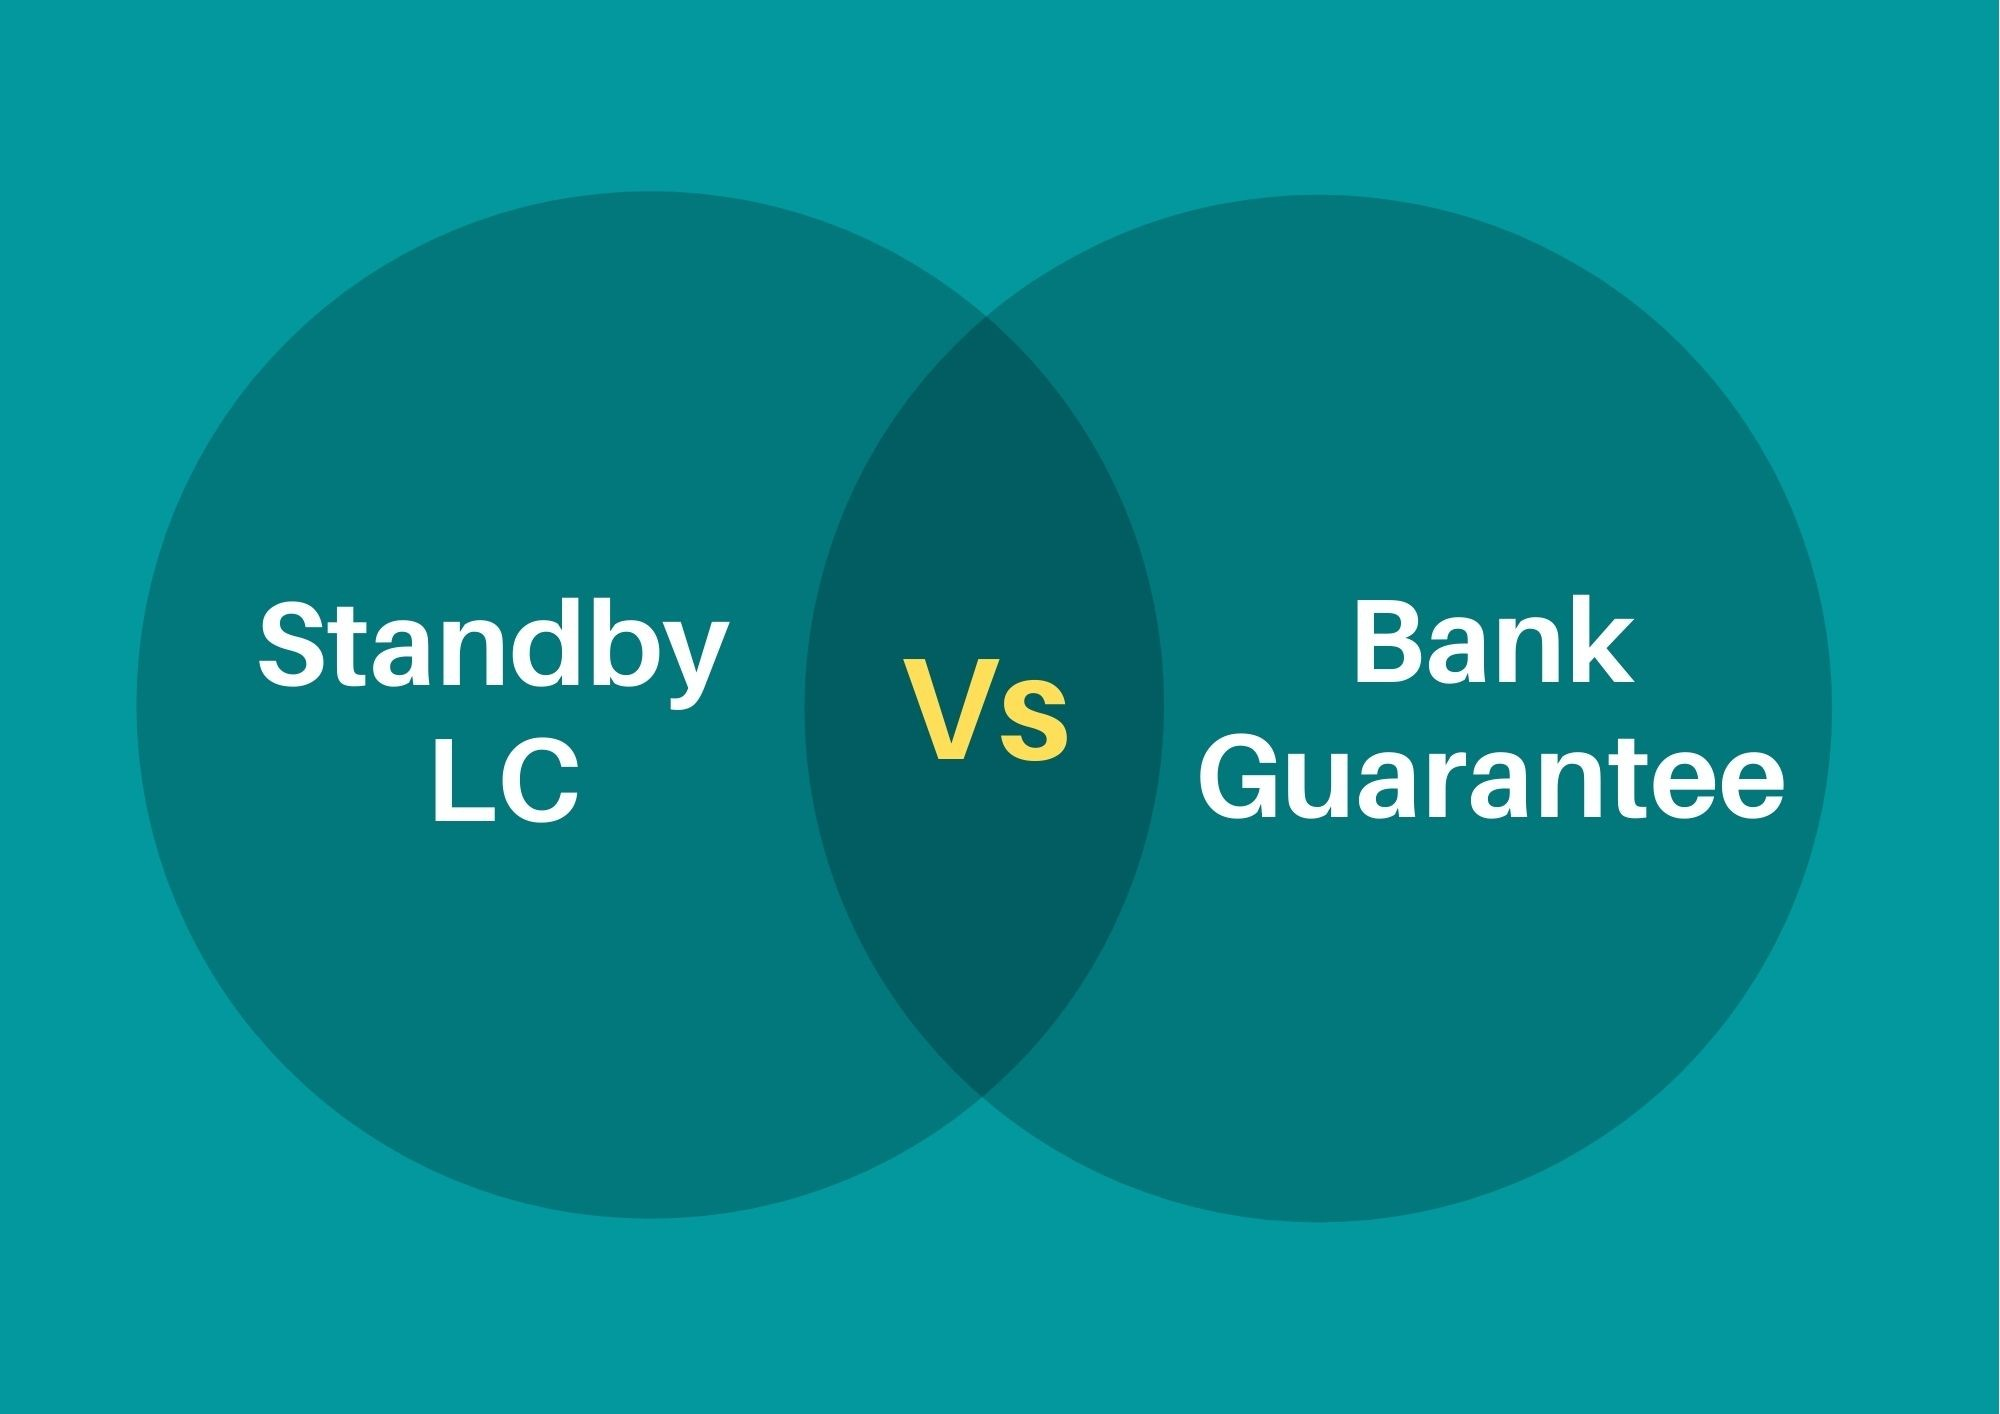 difference-between-standby-lc-and-bank-guarantee